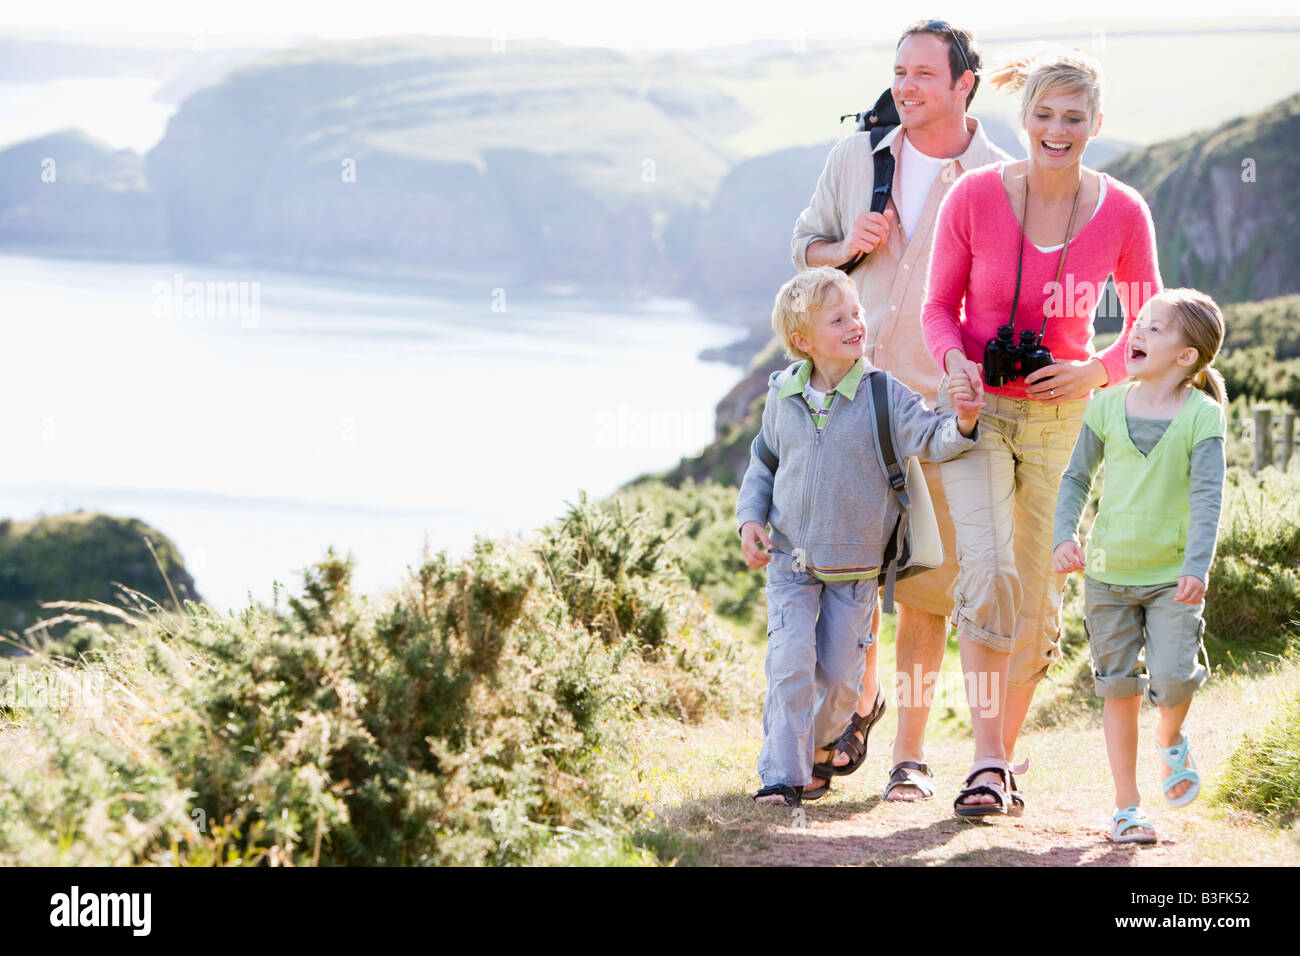 Family walking on cliffside path holding hands and smiling - Stock Image